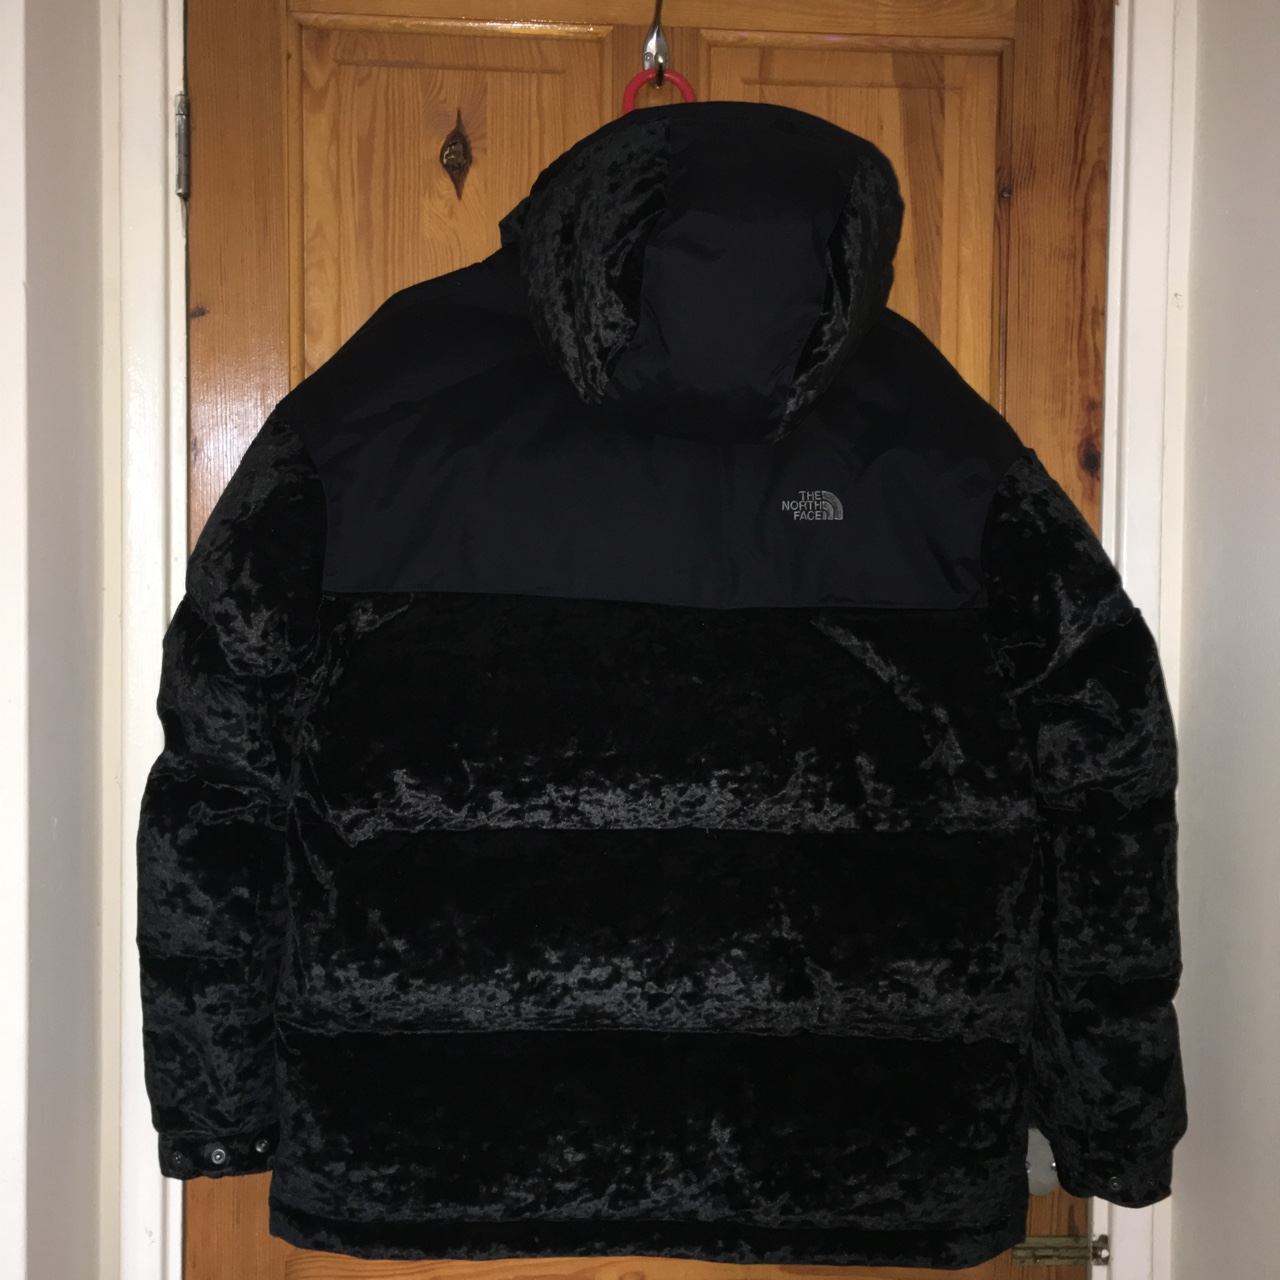 5e7e83e17 THE NORTH FACE BLACK SERIES URBAN VELVET NUPTSE... - Depop